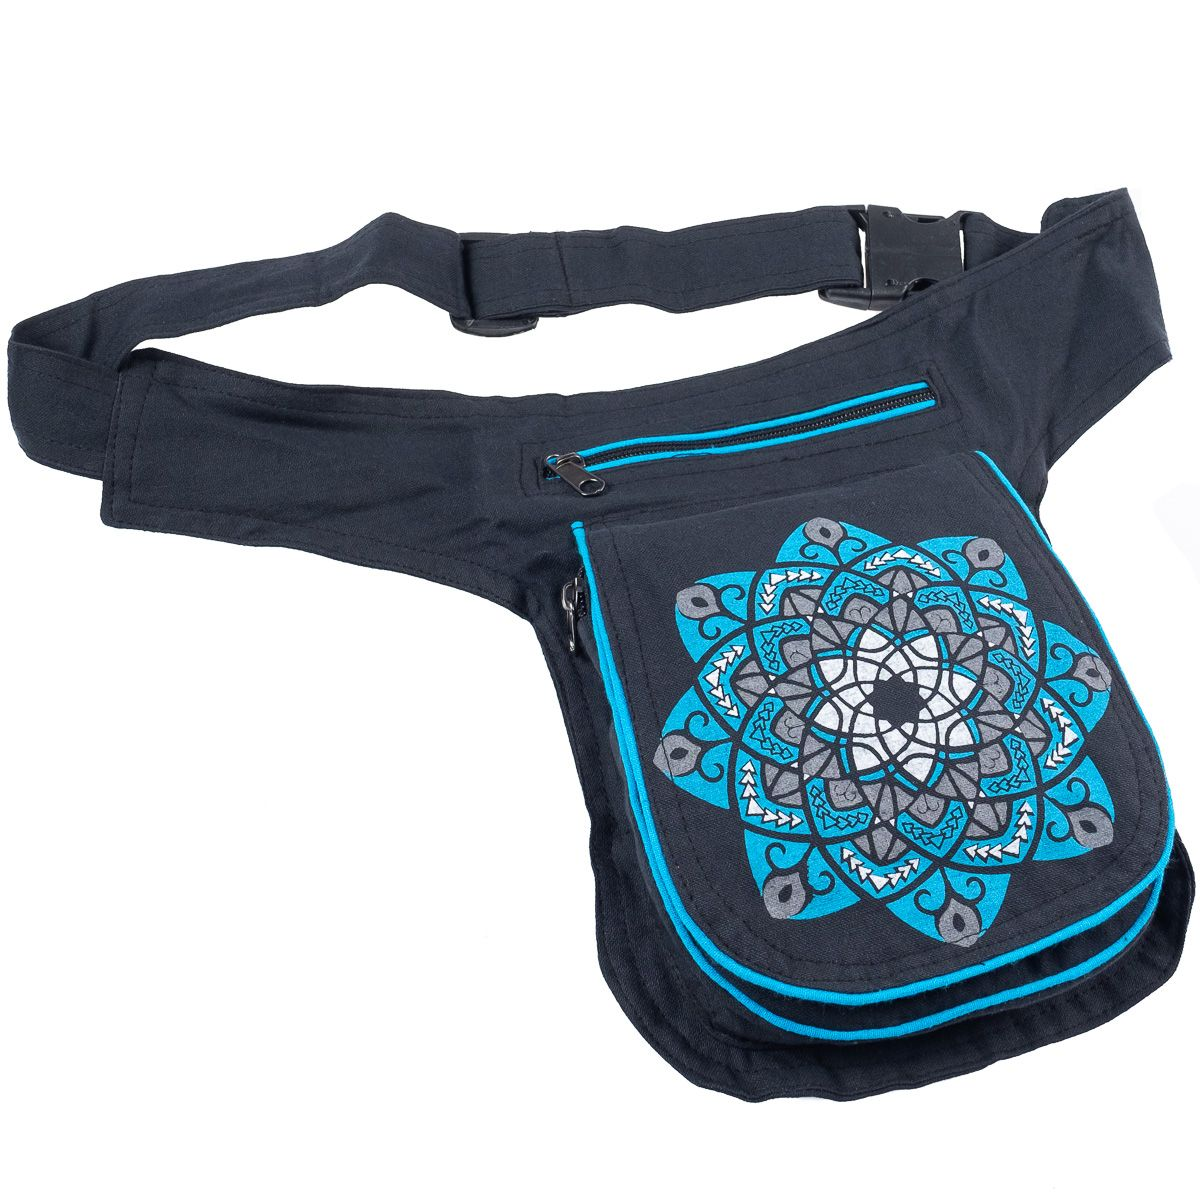 Mandala Cotton Fairtrade Money Belt, Fanny Pack Waist Belt. Festival Bag. Handmade Nepalese - Ethnic-Tara